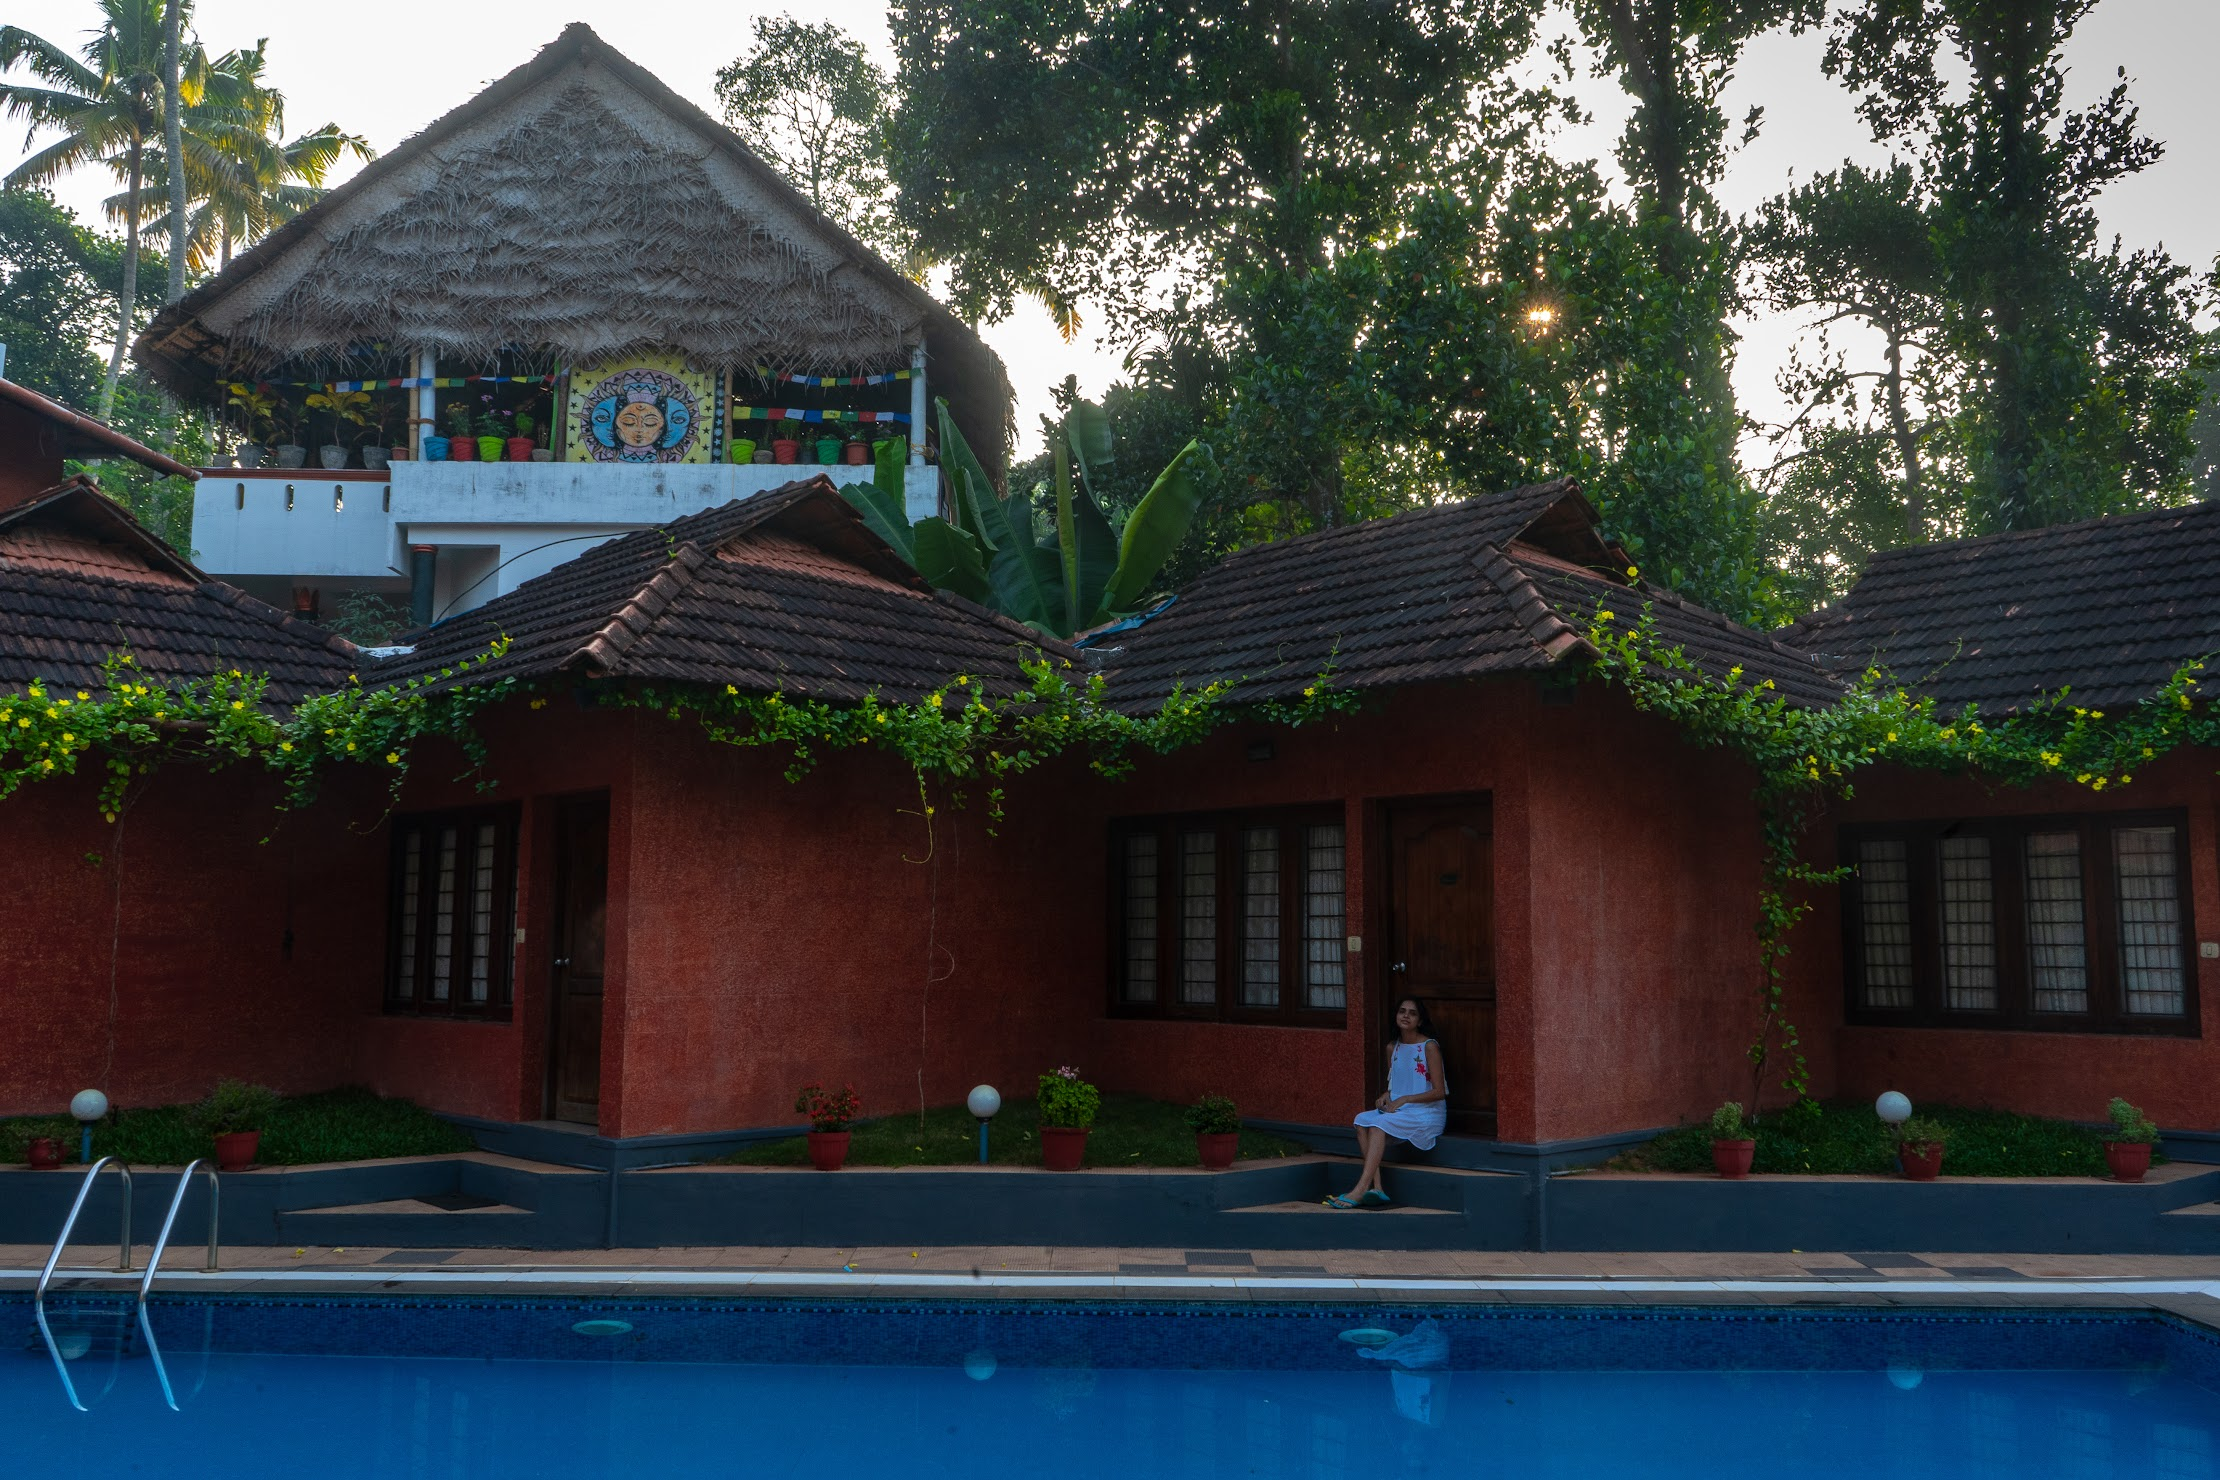 Our resort in Varkala